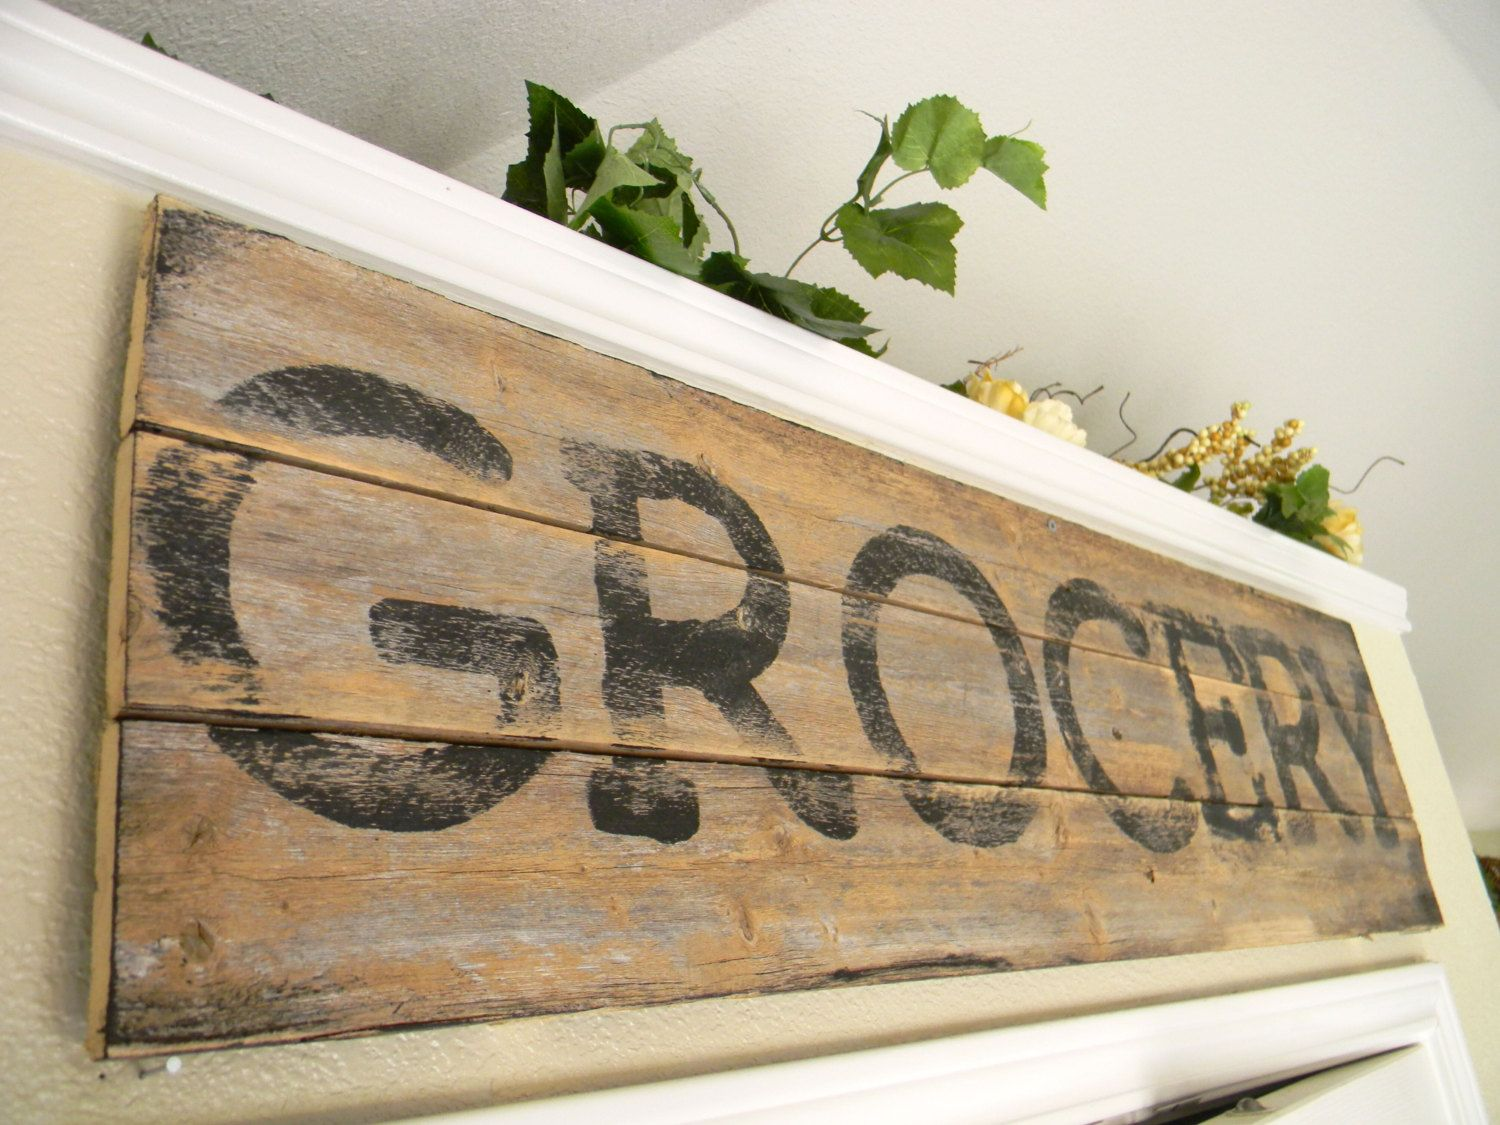 sign-wood-kitchen wall decor-country-chic-distressed-farmhouse style